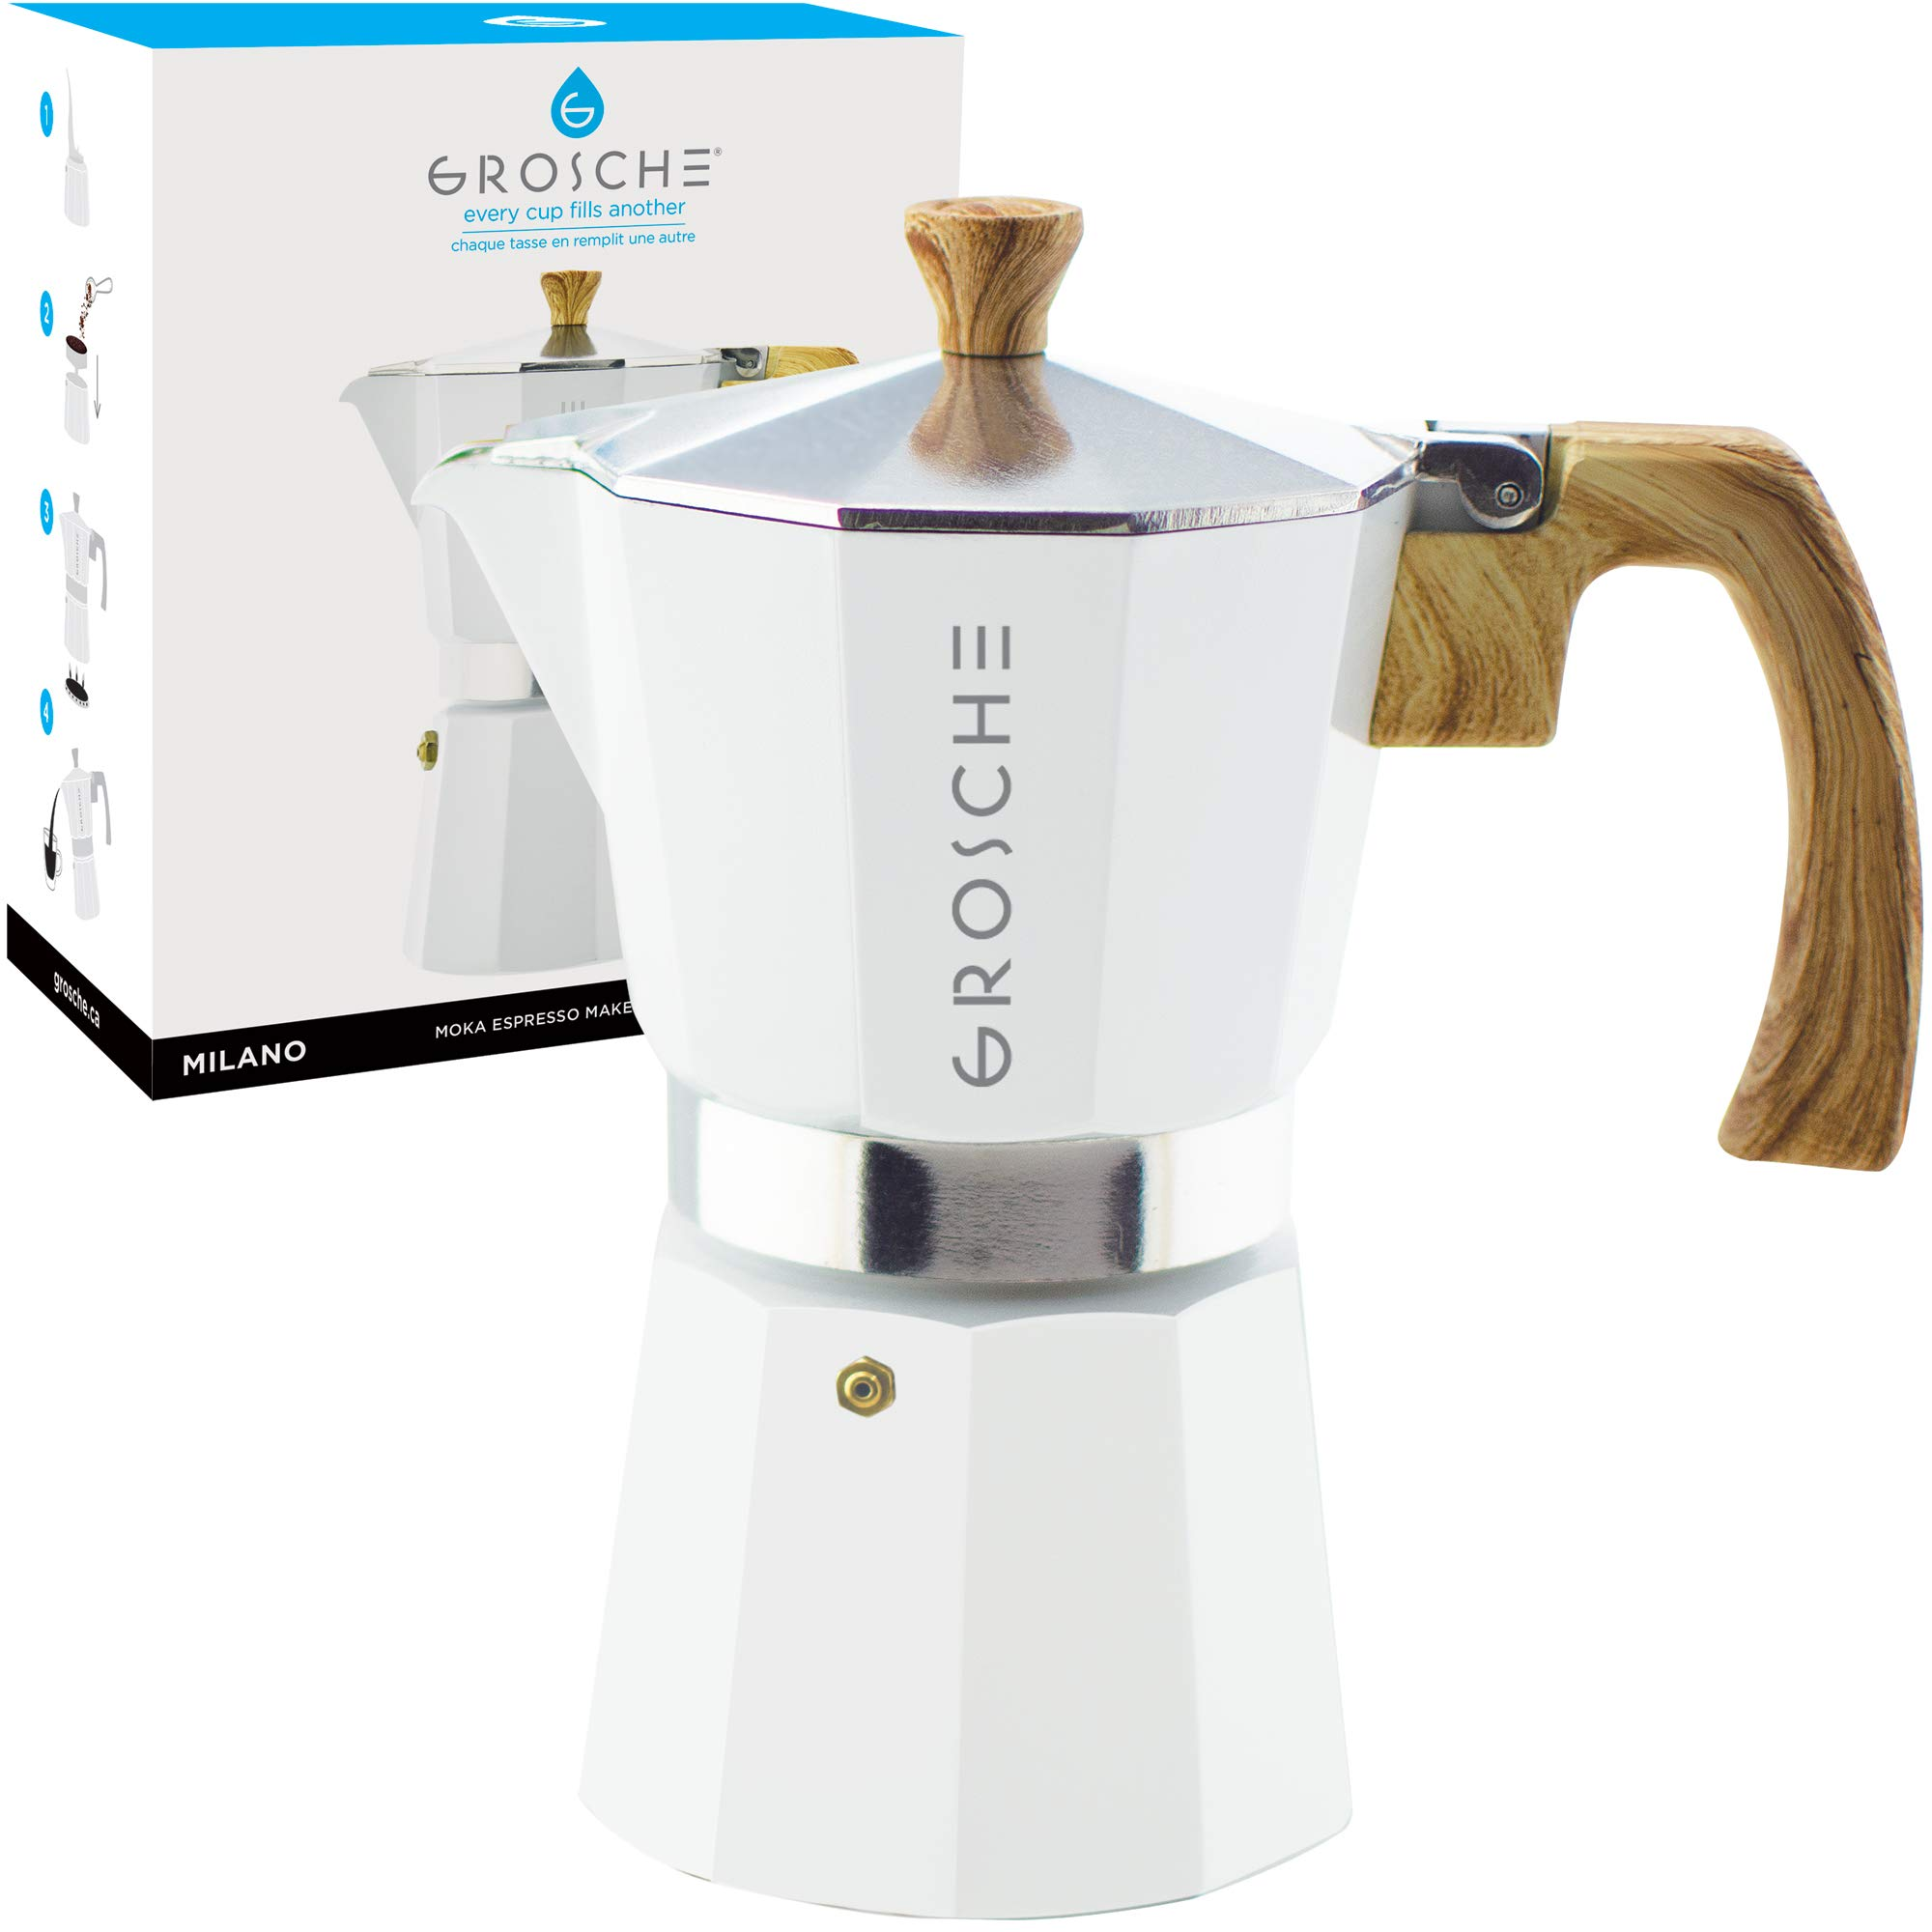 GROSCHE Milano Moka Stovetop Espresso Coffee Maker (6 Cup/9.3 oz, White) by GROSCHE (Image #1)